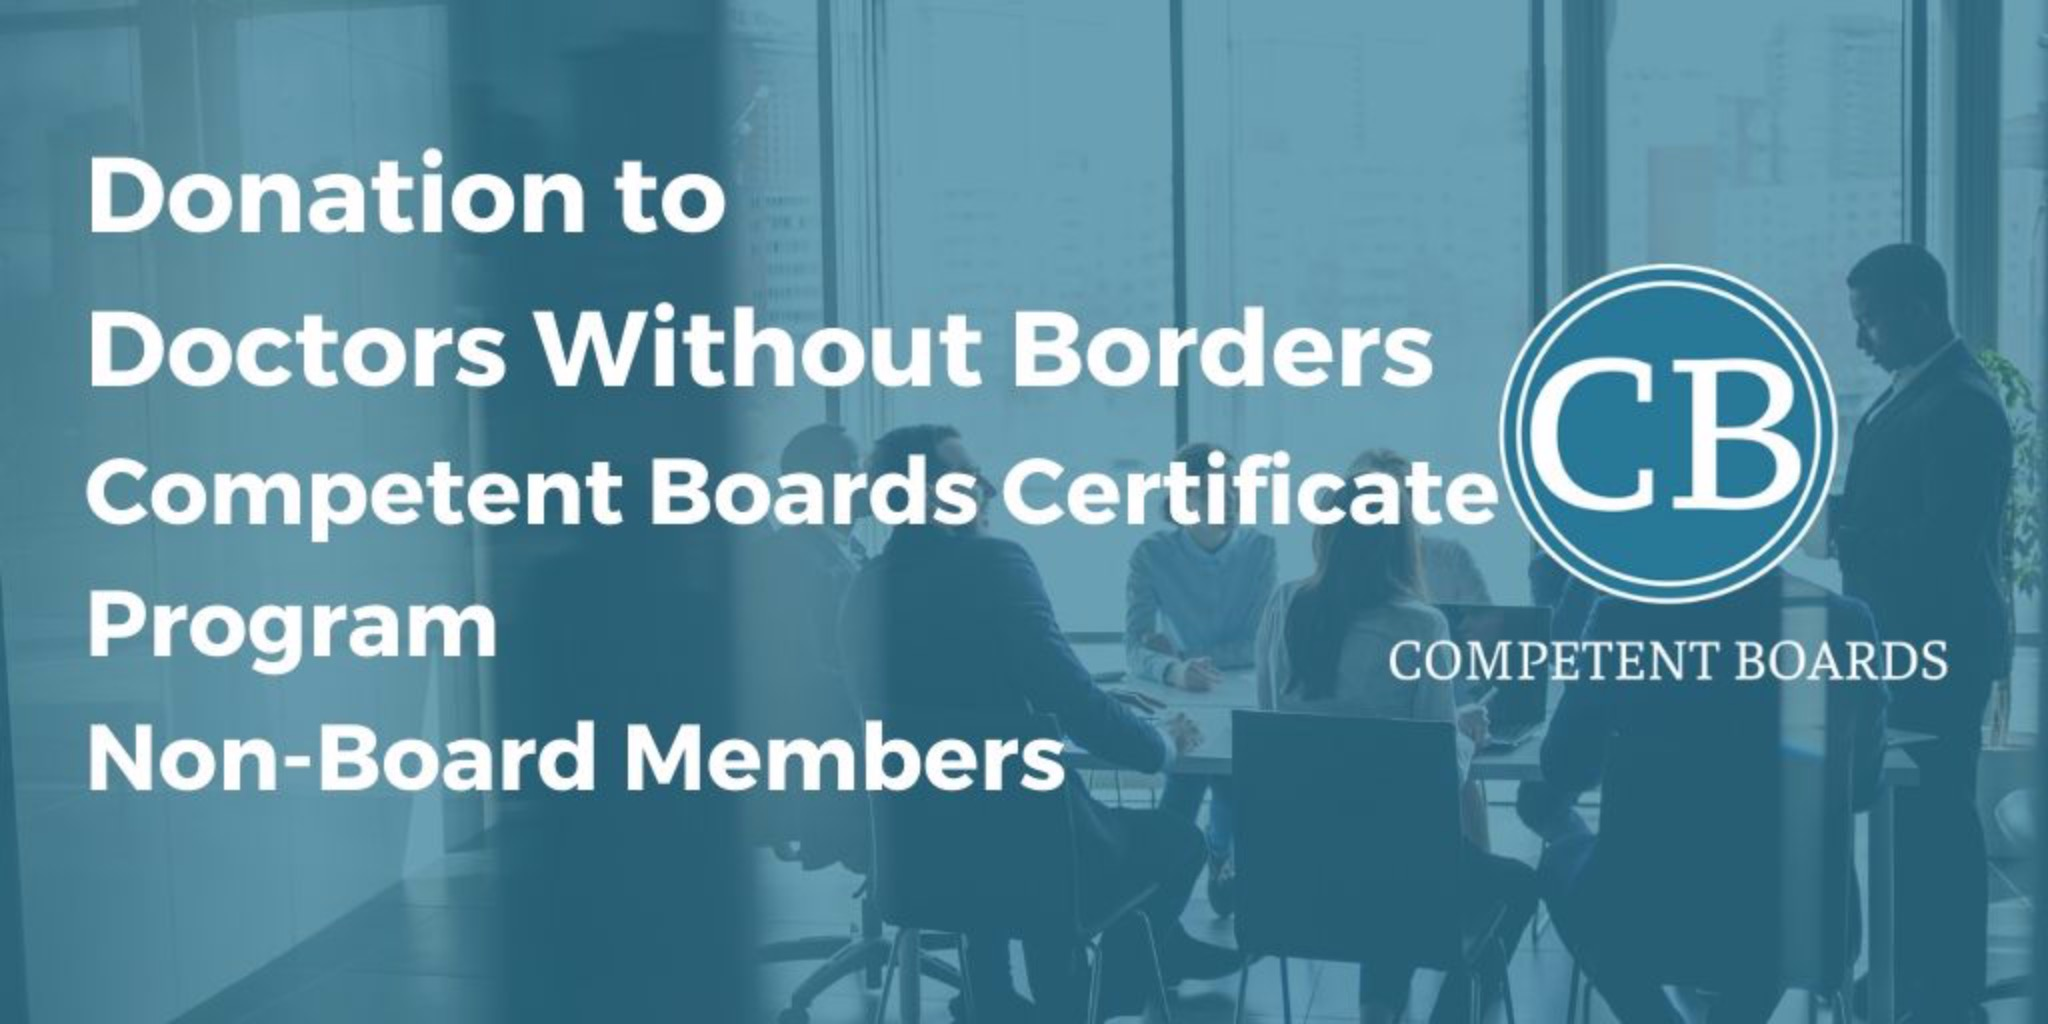 Certificate Program Non-Board Members Sept - Mar: Donation to Doctors Without Borders